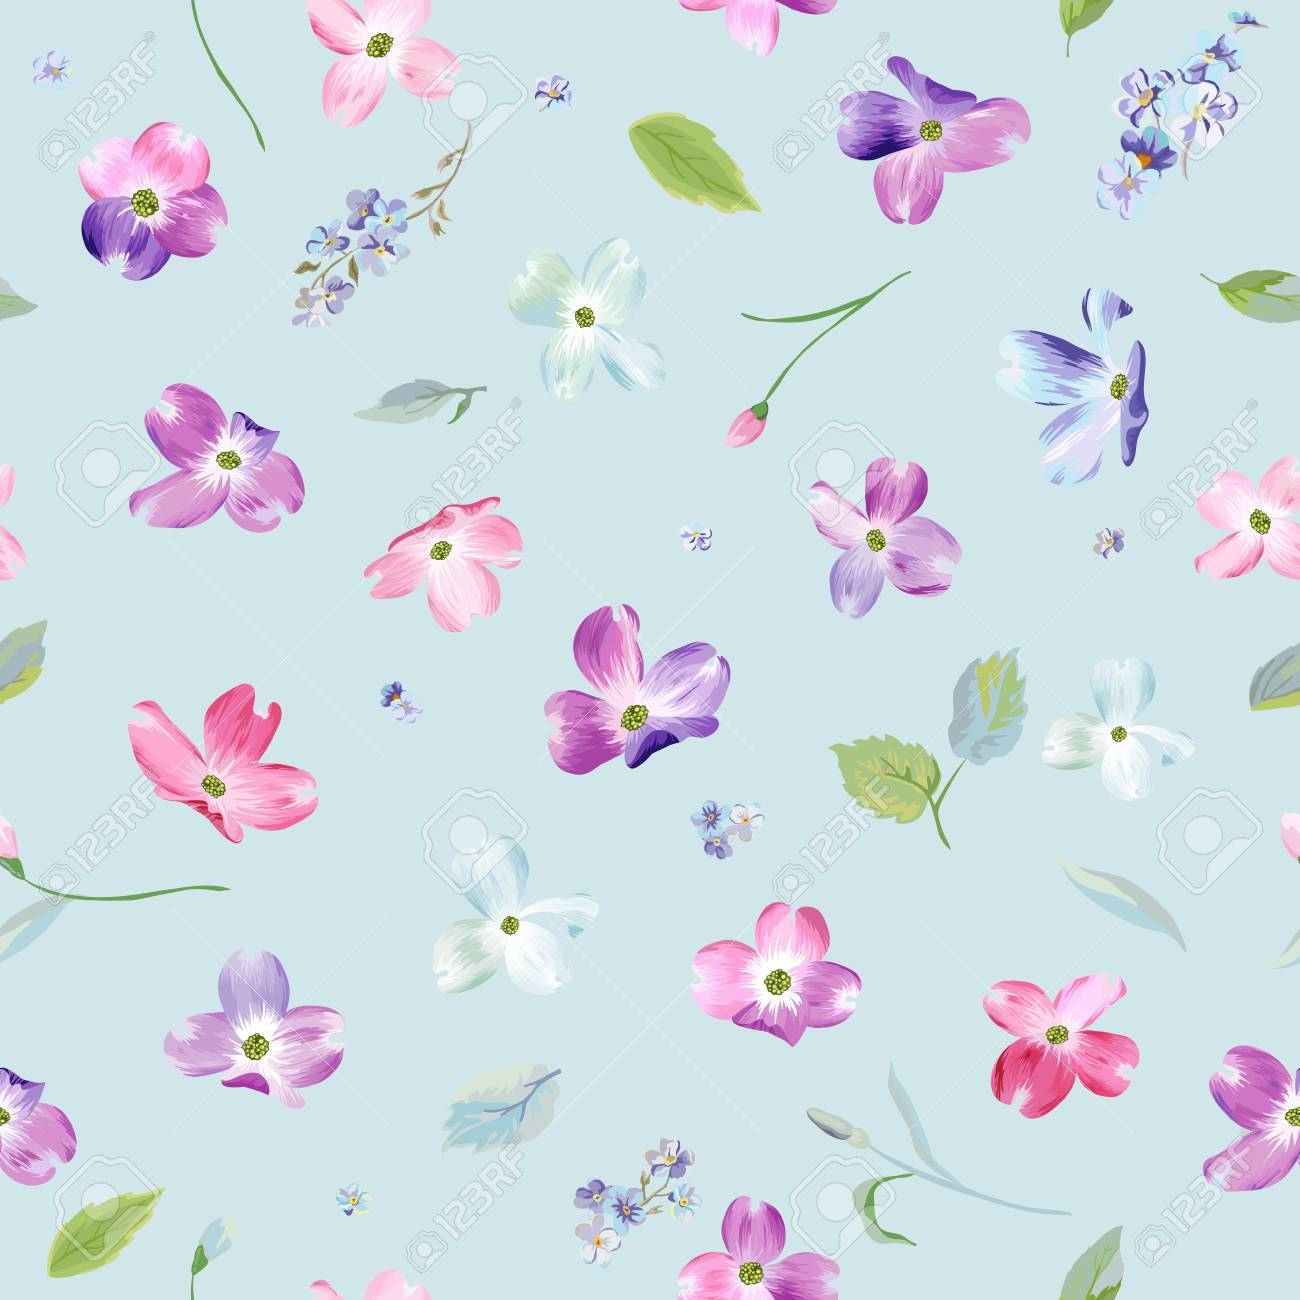 Spring Flowers Seamless Pattern Watercolor Floral Background